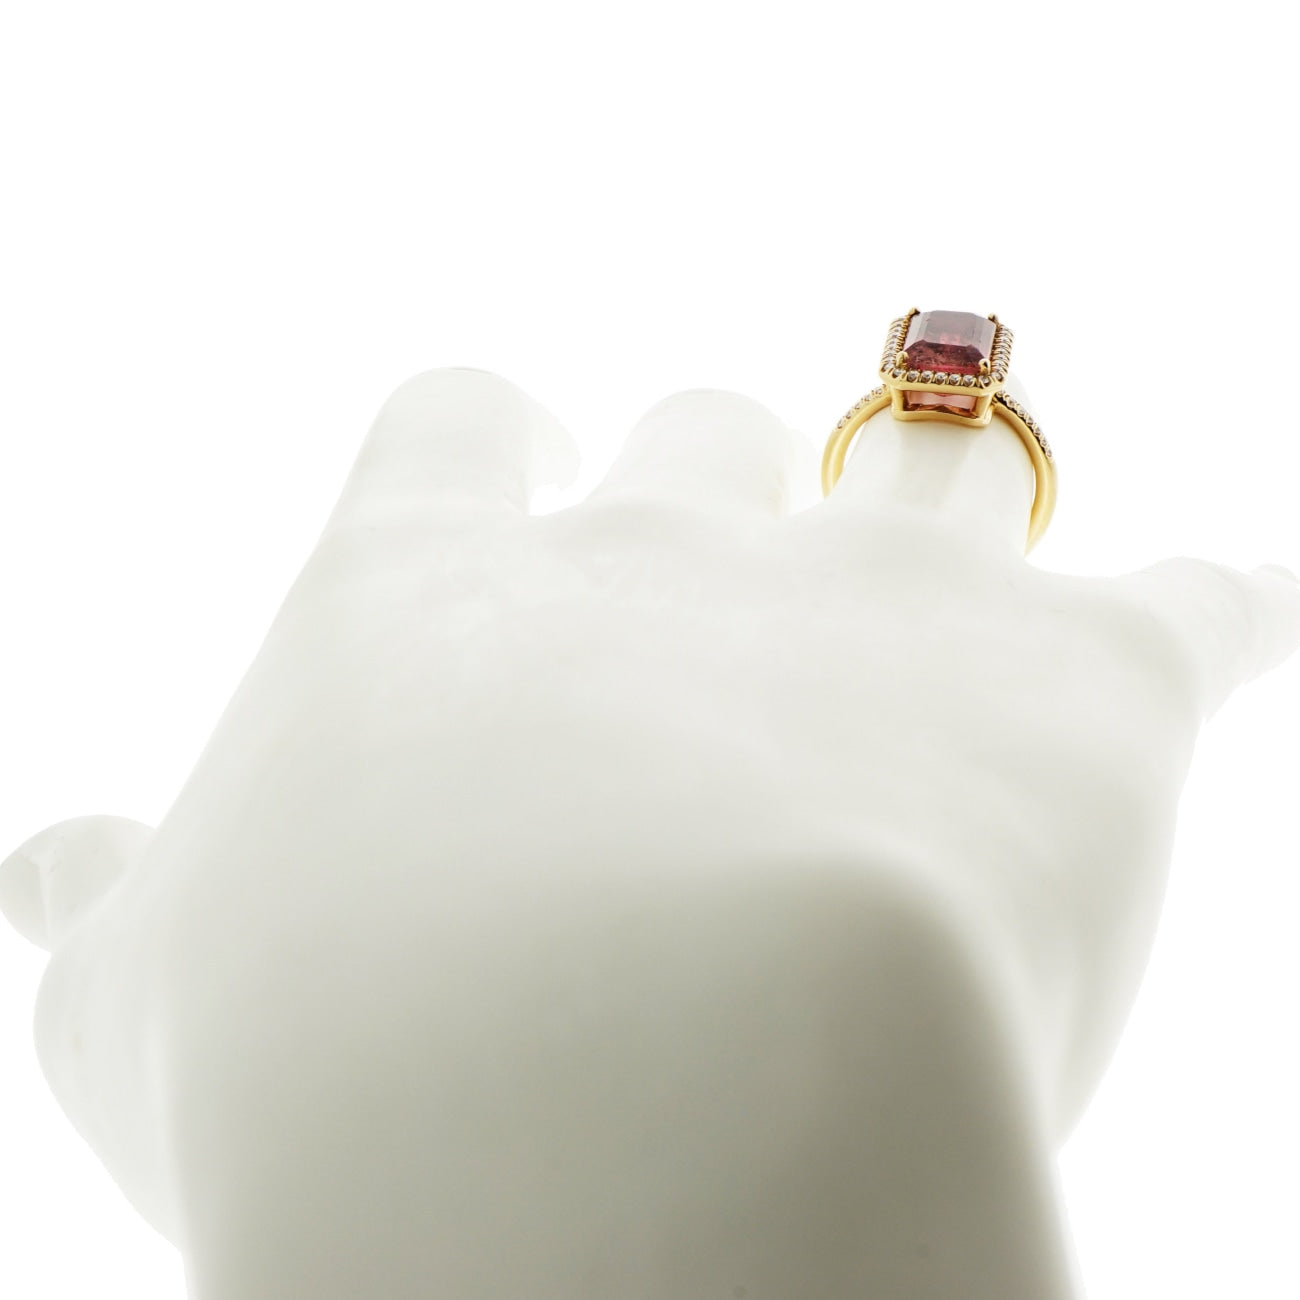 Lauren K Jewelry - Watermelon Tourmaline & Diamond Rose Gold Ring | Manfredi Jewels